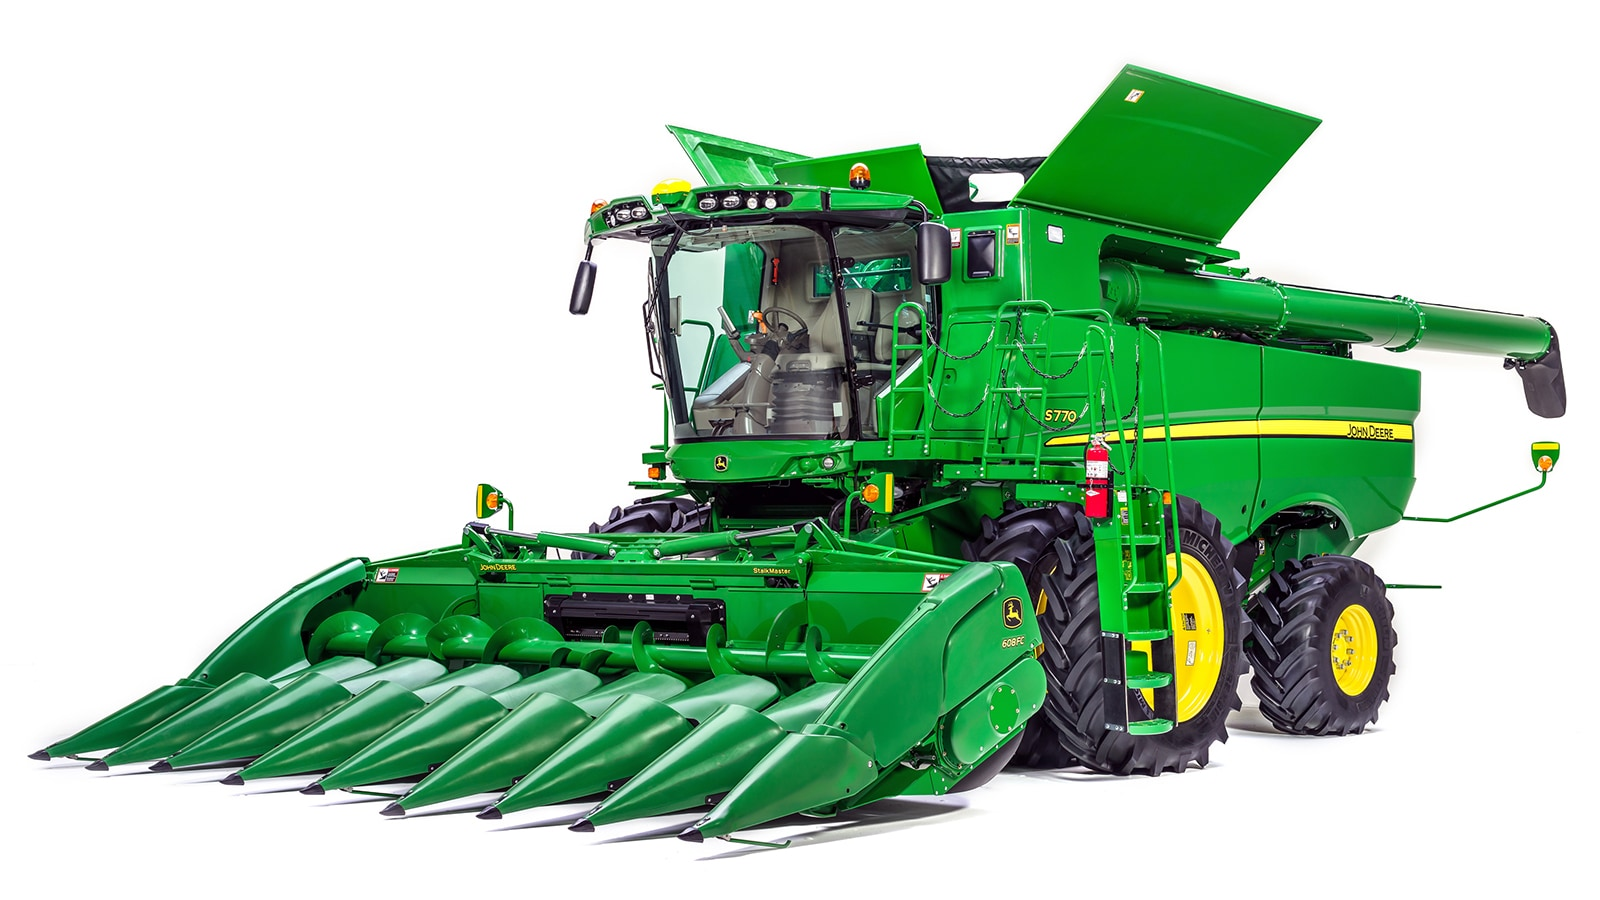 The John Deere S780 Combine features the latest automated harvesting technology and is one of four new S700 Combines introduced for model year 2018 production.